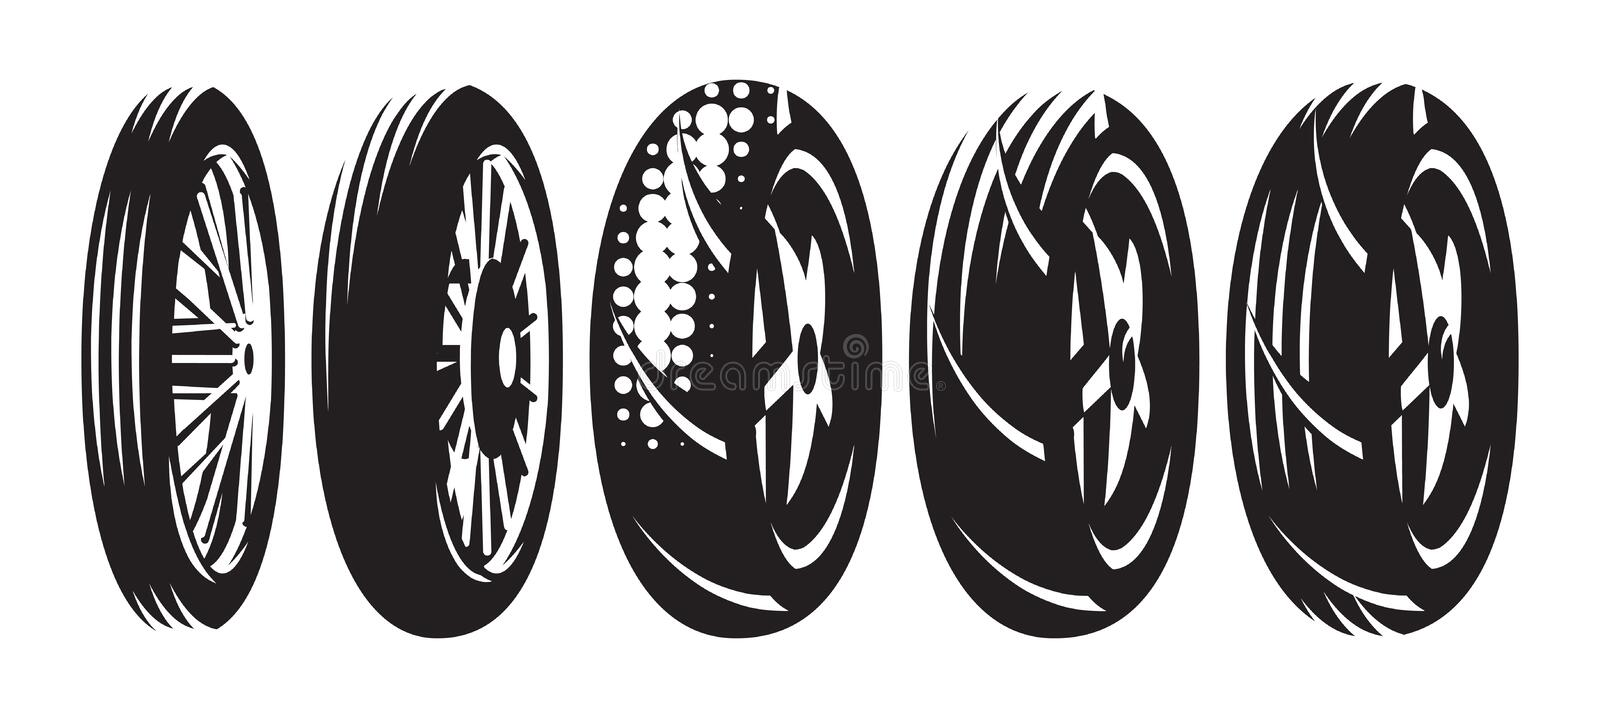 Set of vector monochrome templates of various motorcycle wheels.  stock illustration